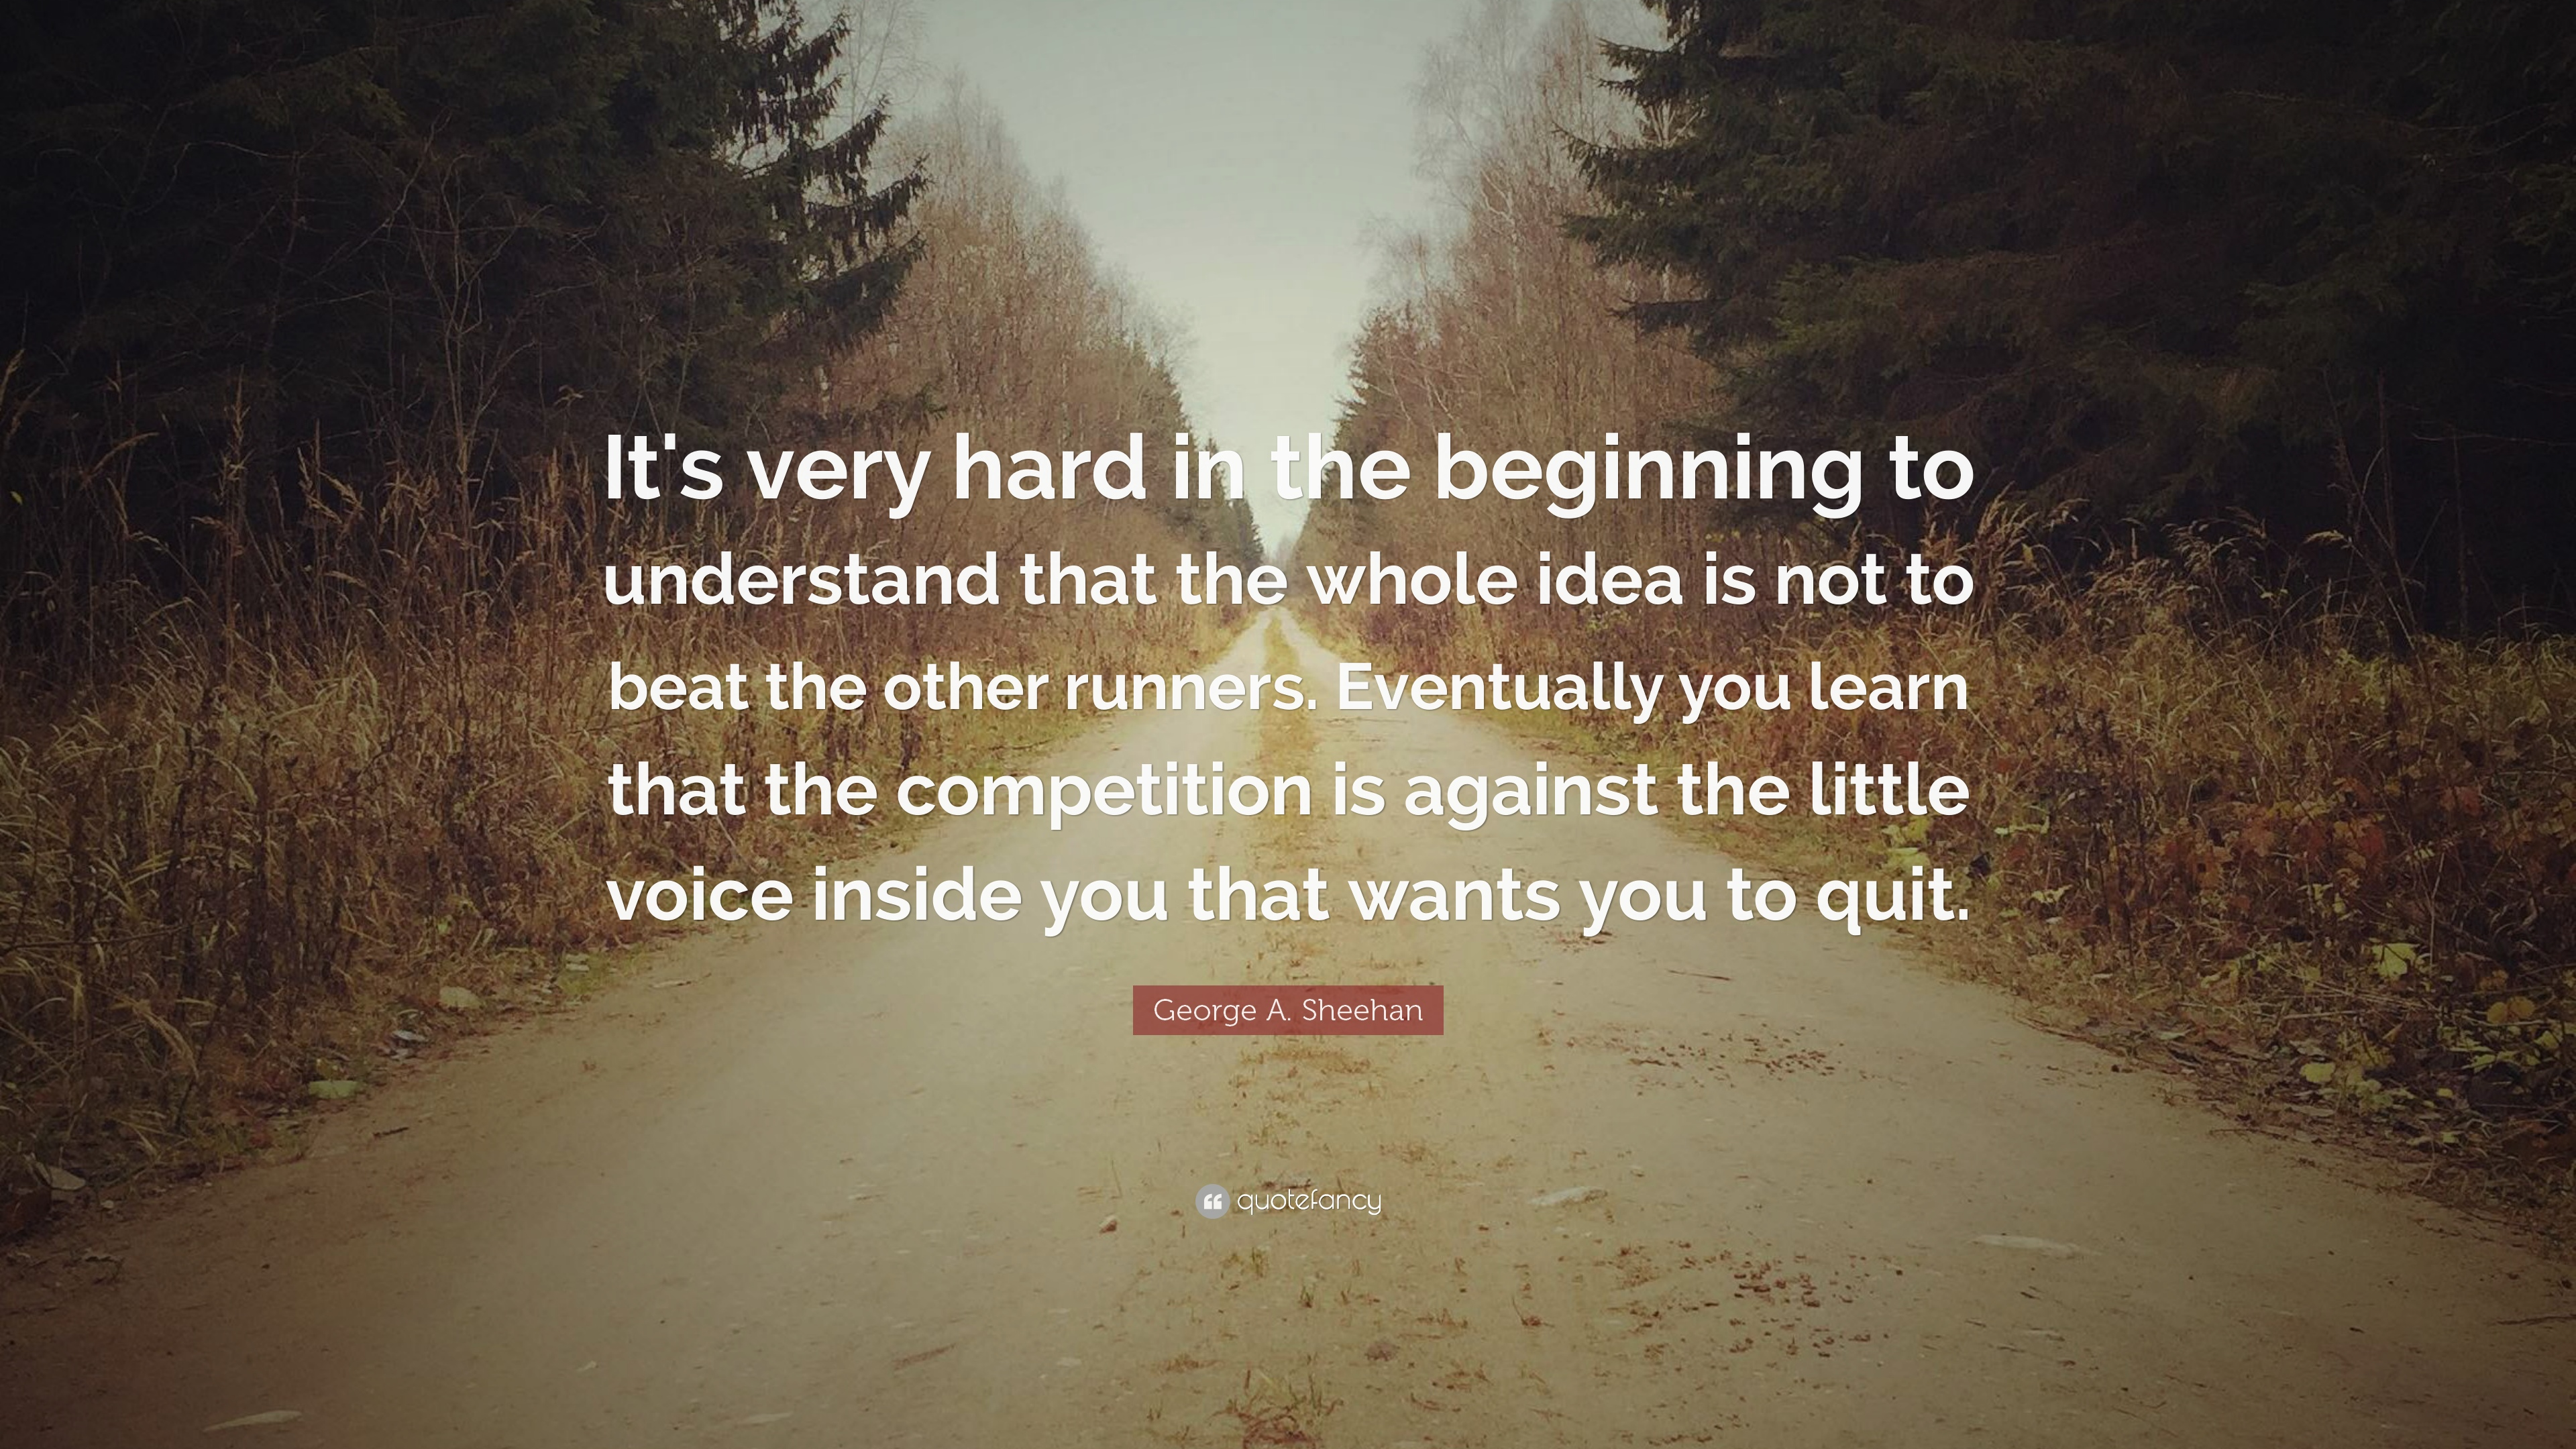 Image result for It's very hard to understand in the beginning that the whole idea is not to beat the other runners. Eventually, you learn that the competition is against the little voice inside you that wants to quit.